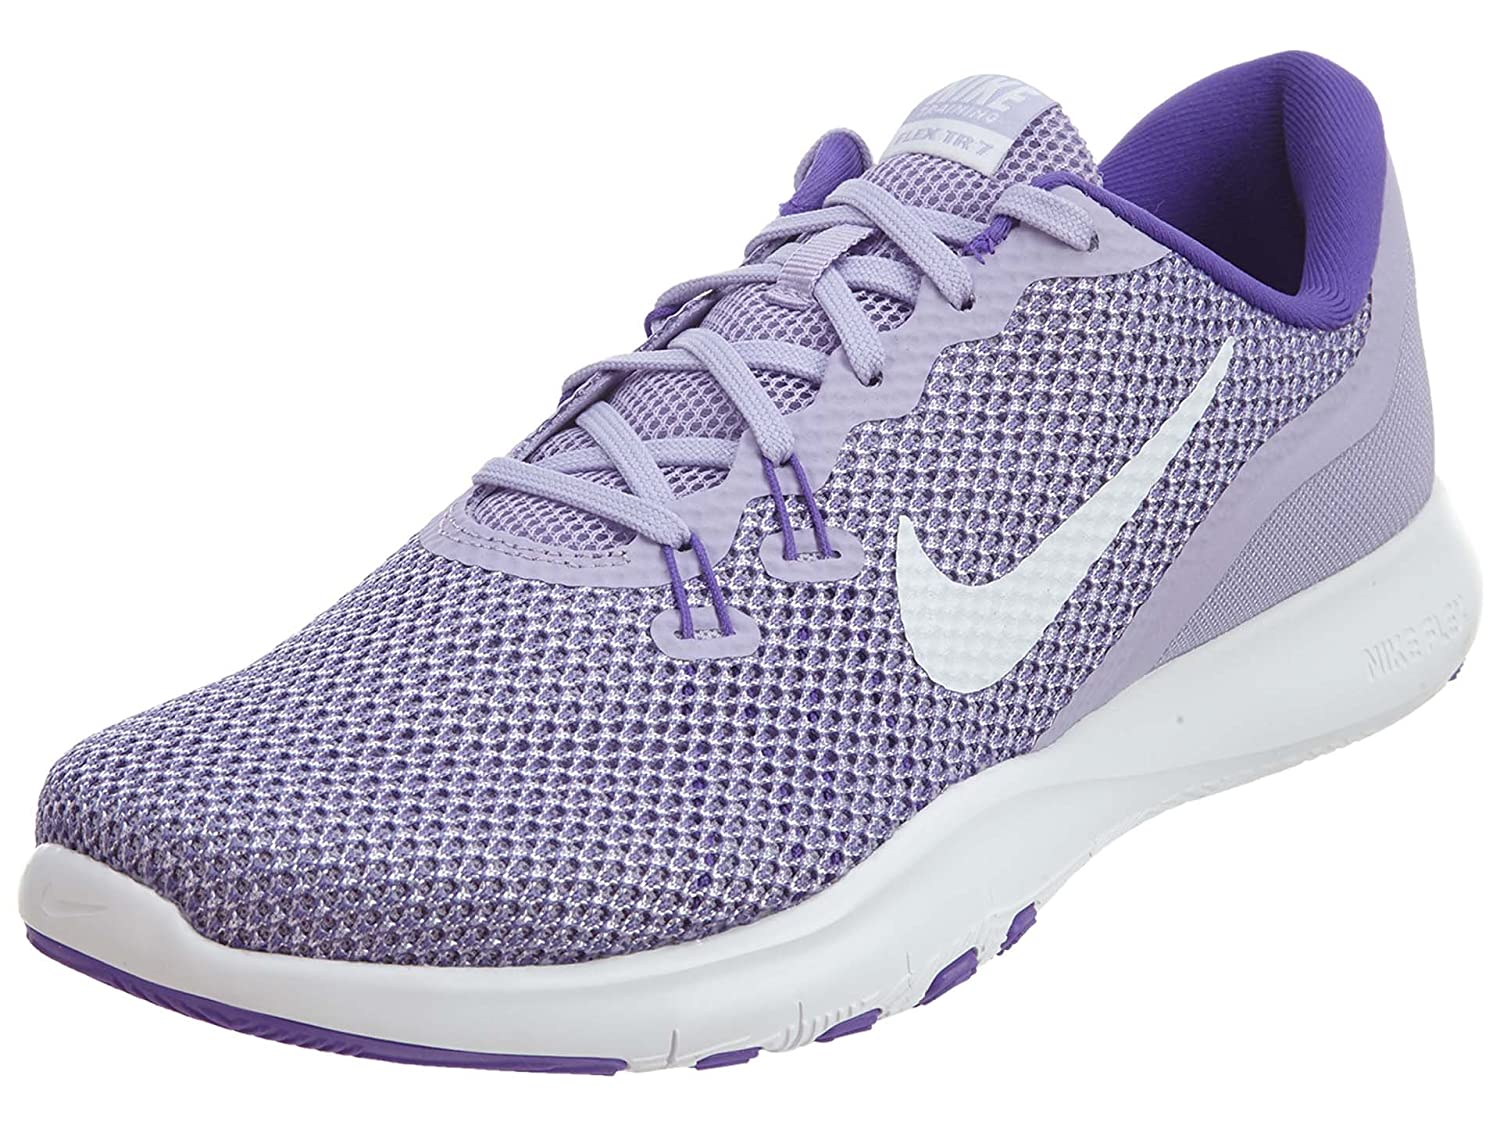 41529290615bb Nike Flex Trainer 7 Women s Running Shoes  Amazon.in  Shoes   Handbags